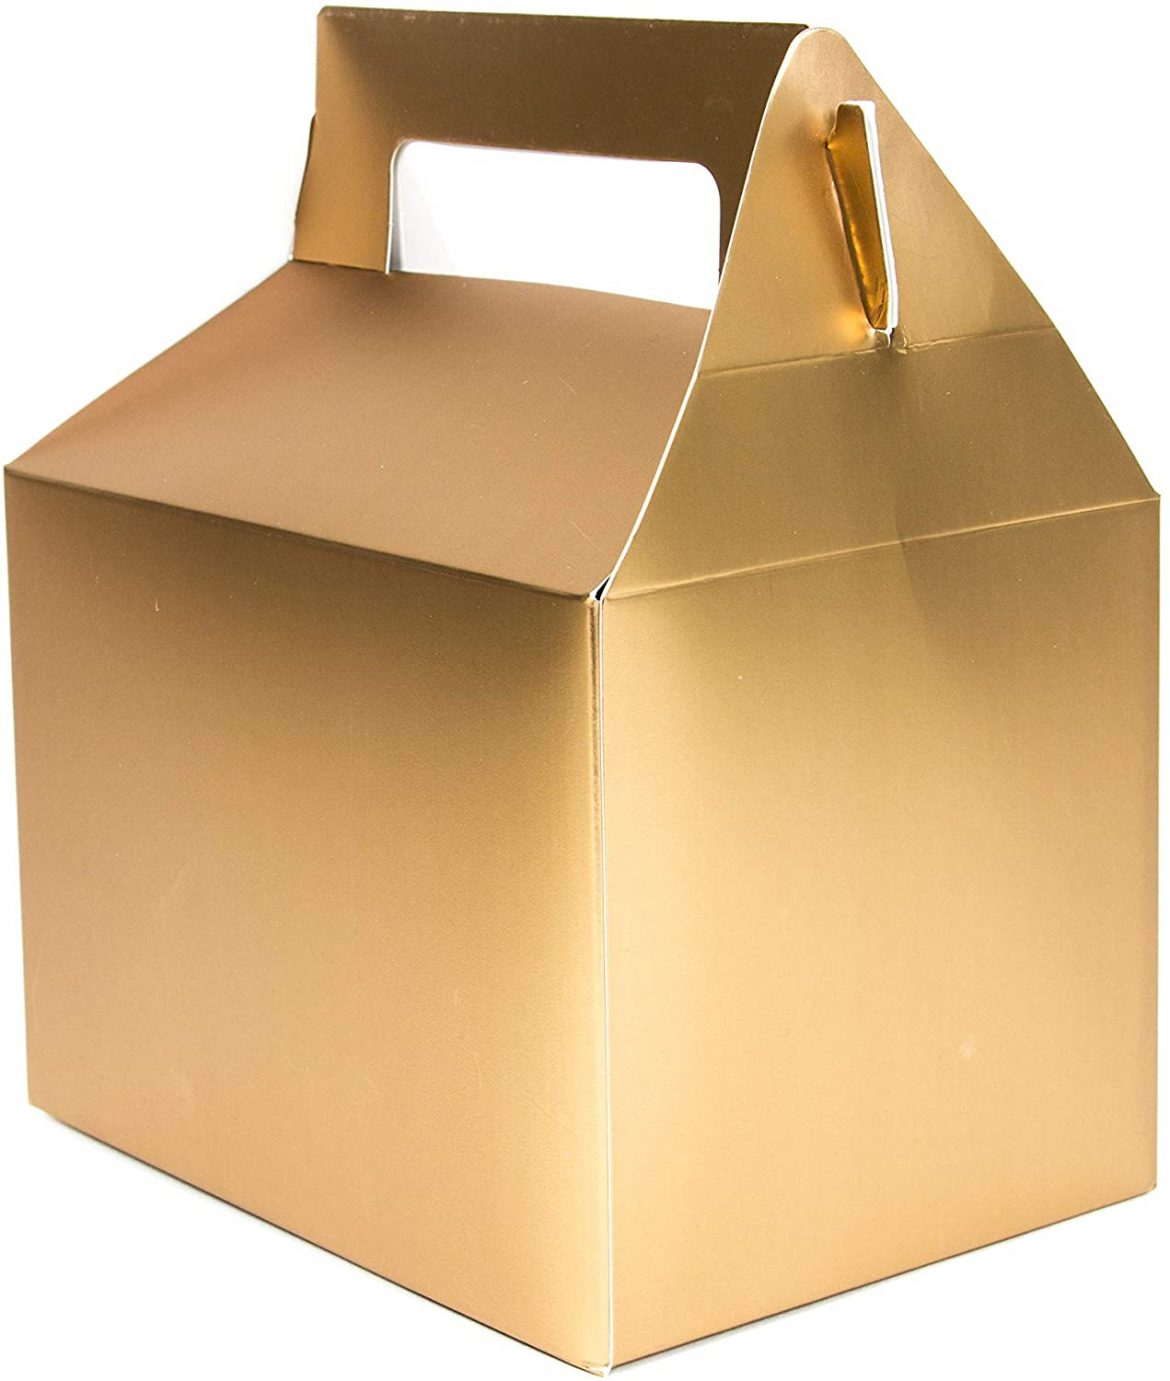 How In Packaging Industry Gable Boxes Are The Game Changer?